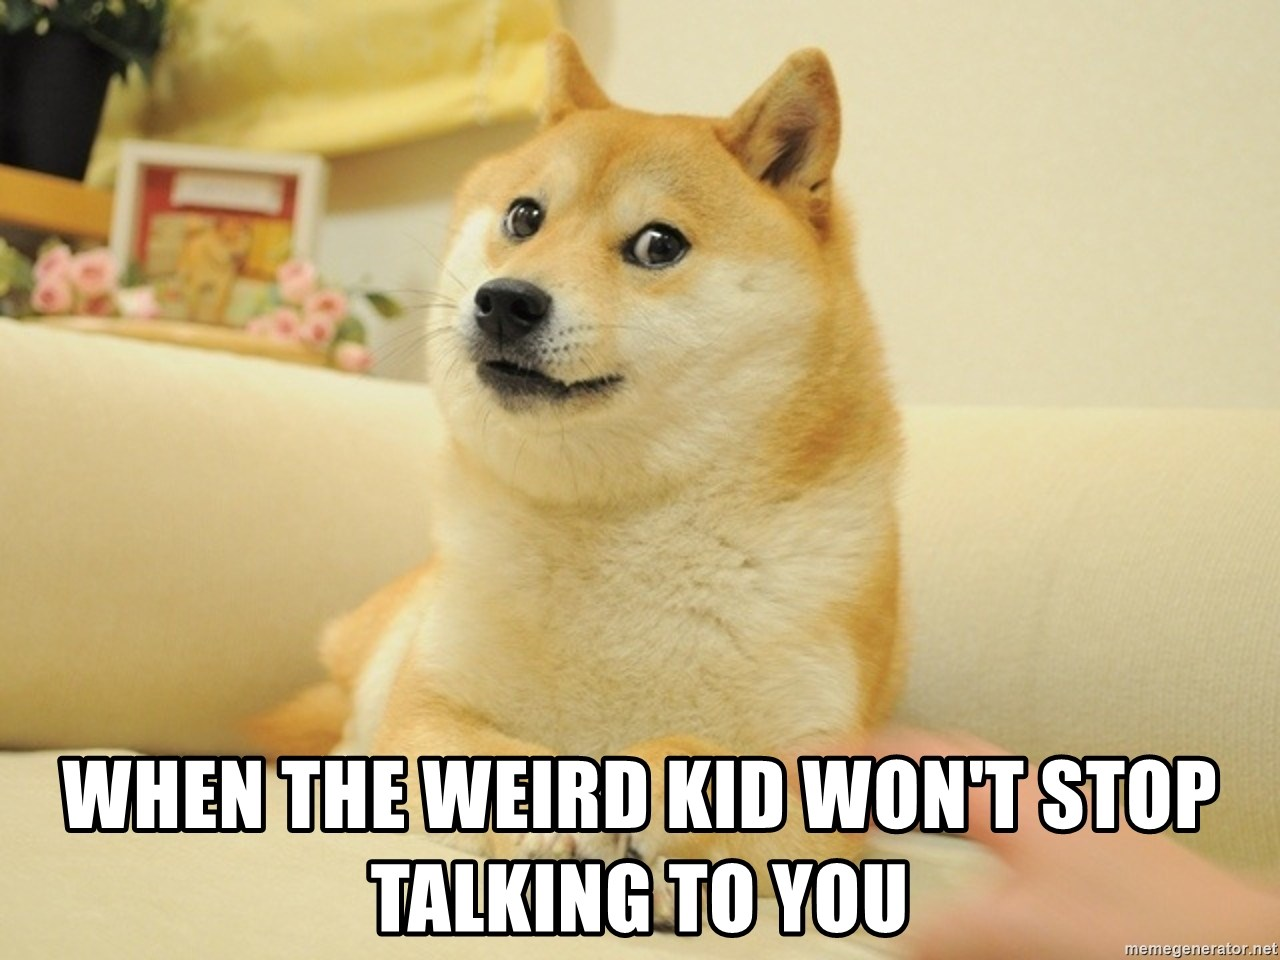 so doge - when the weird kid won't stop talking to you